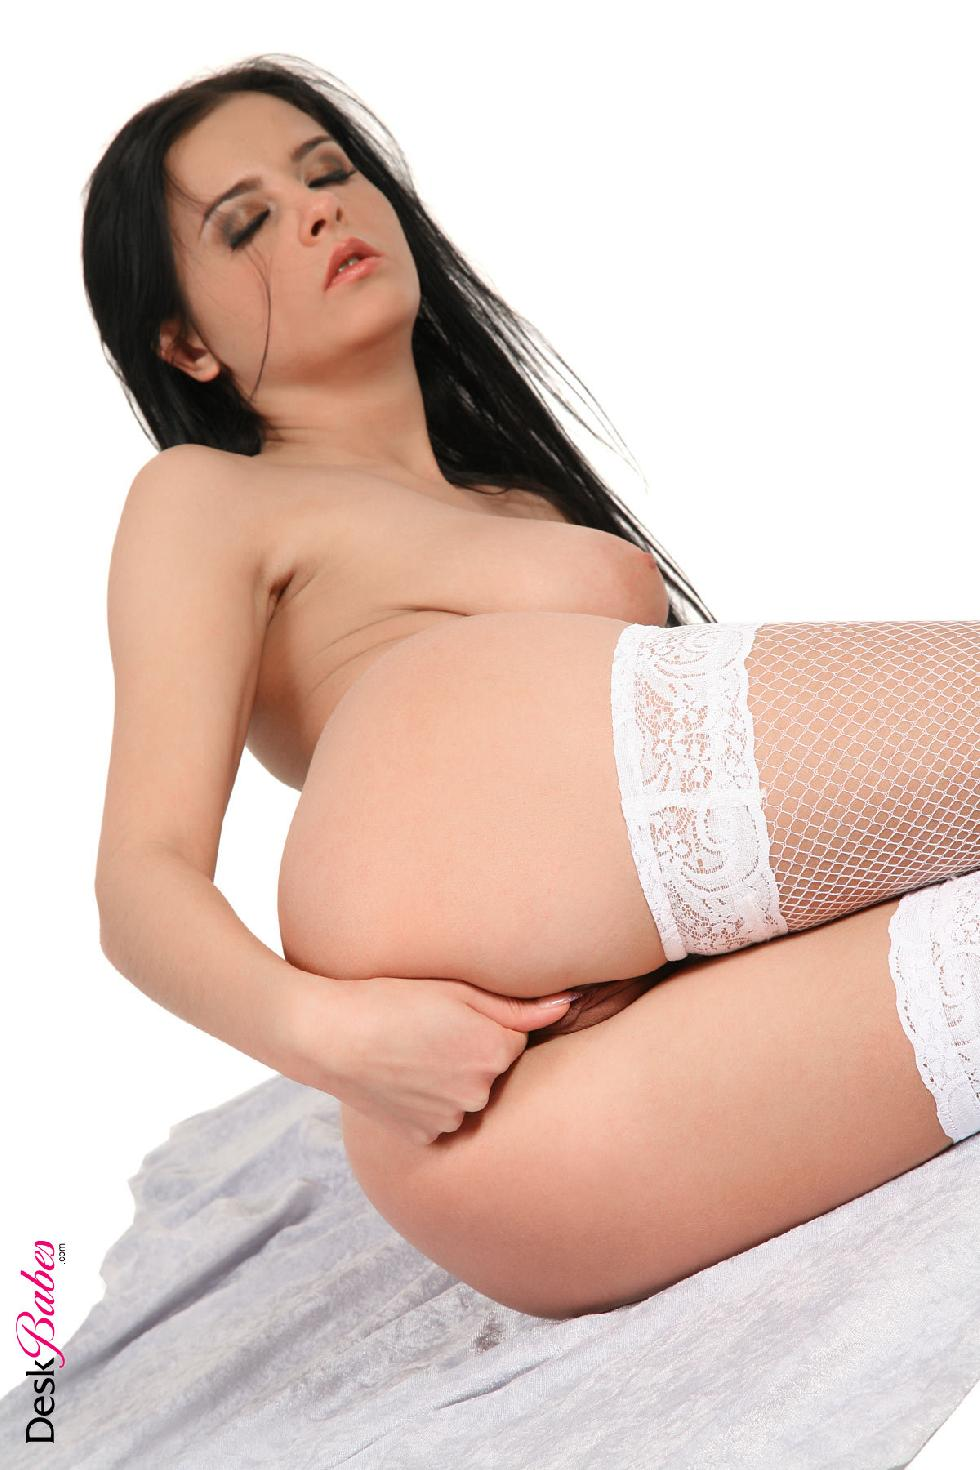 Horny brunette in white stockings - Candy Alexa - 10